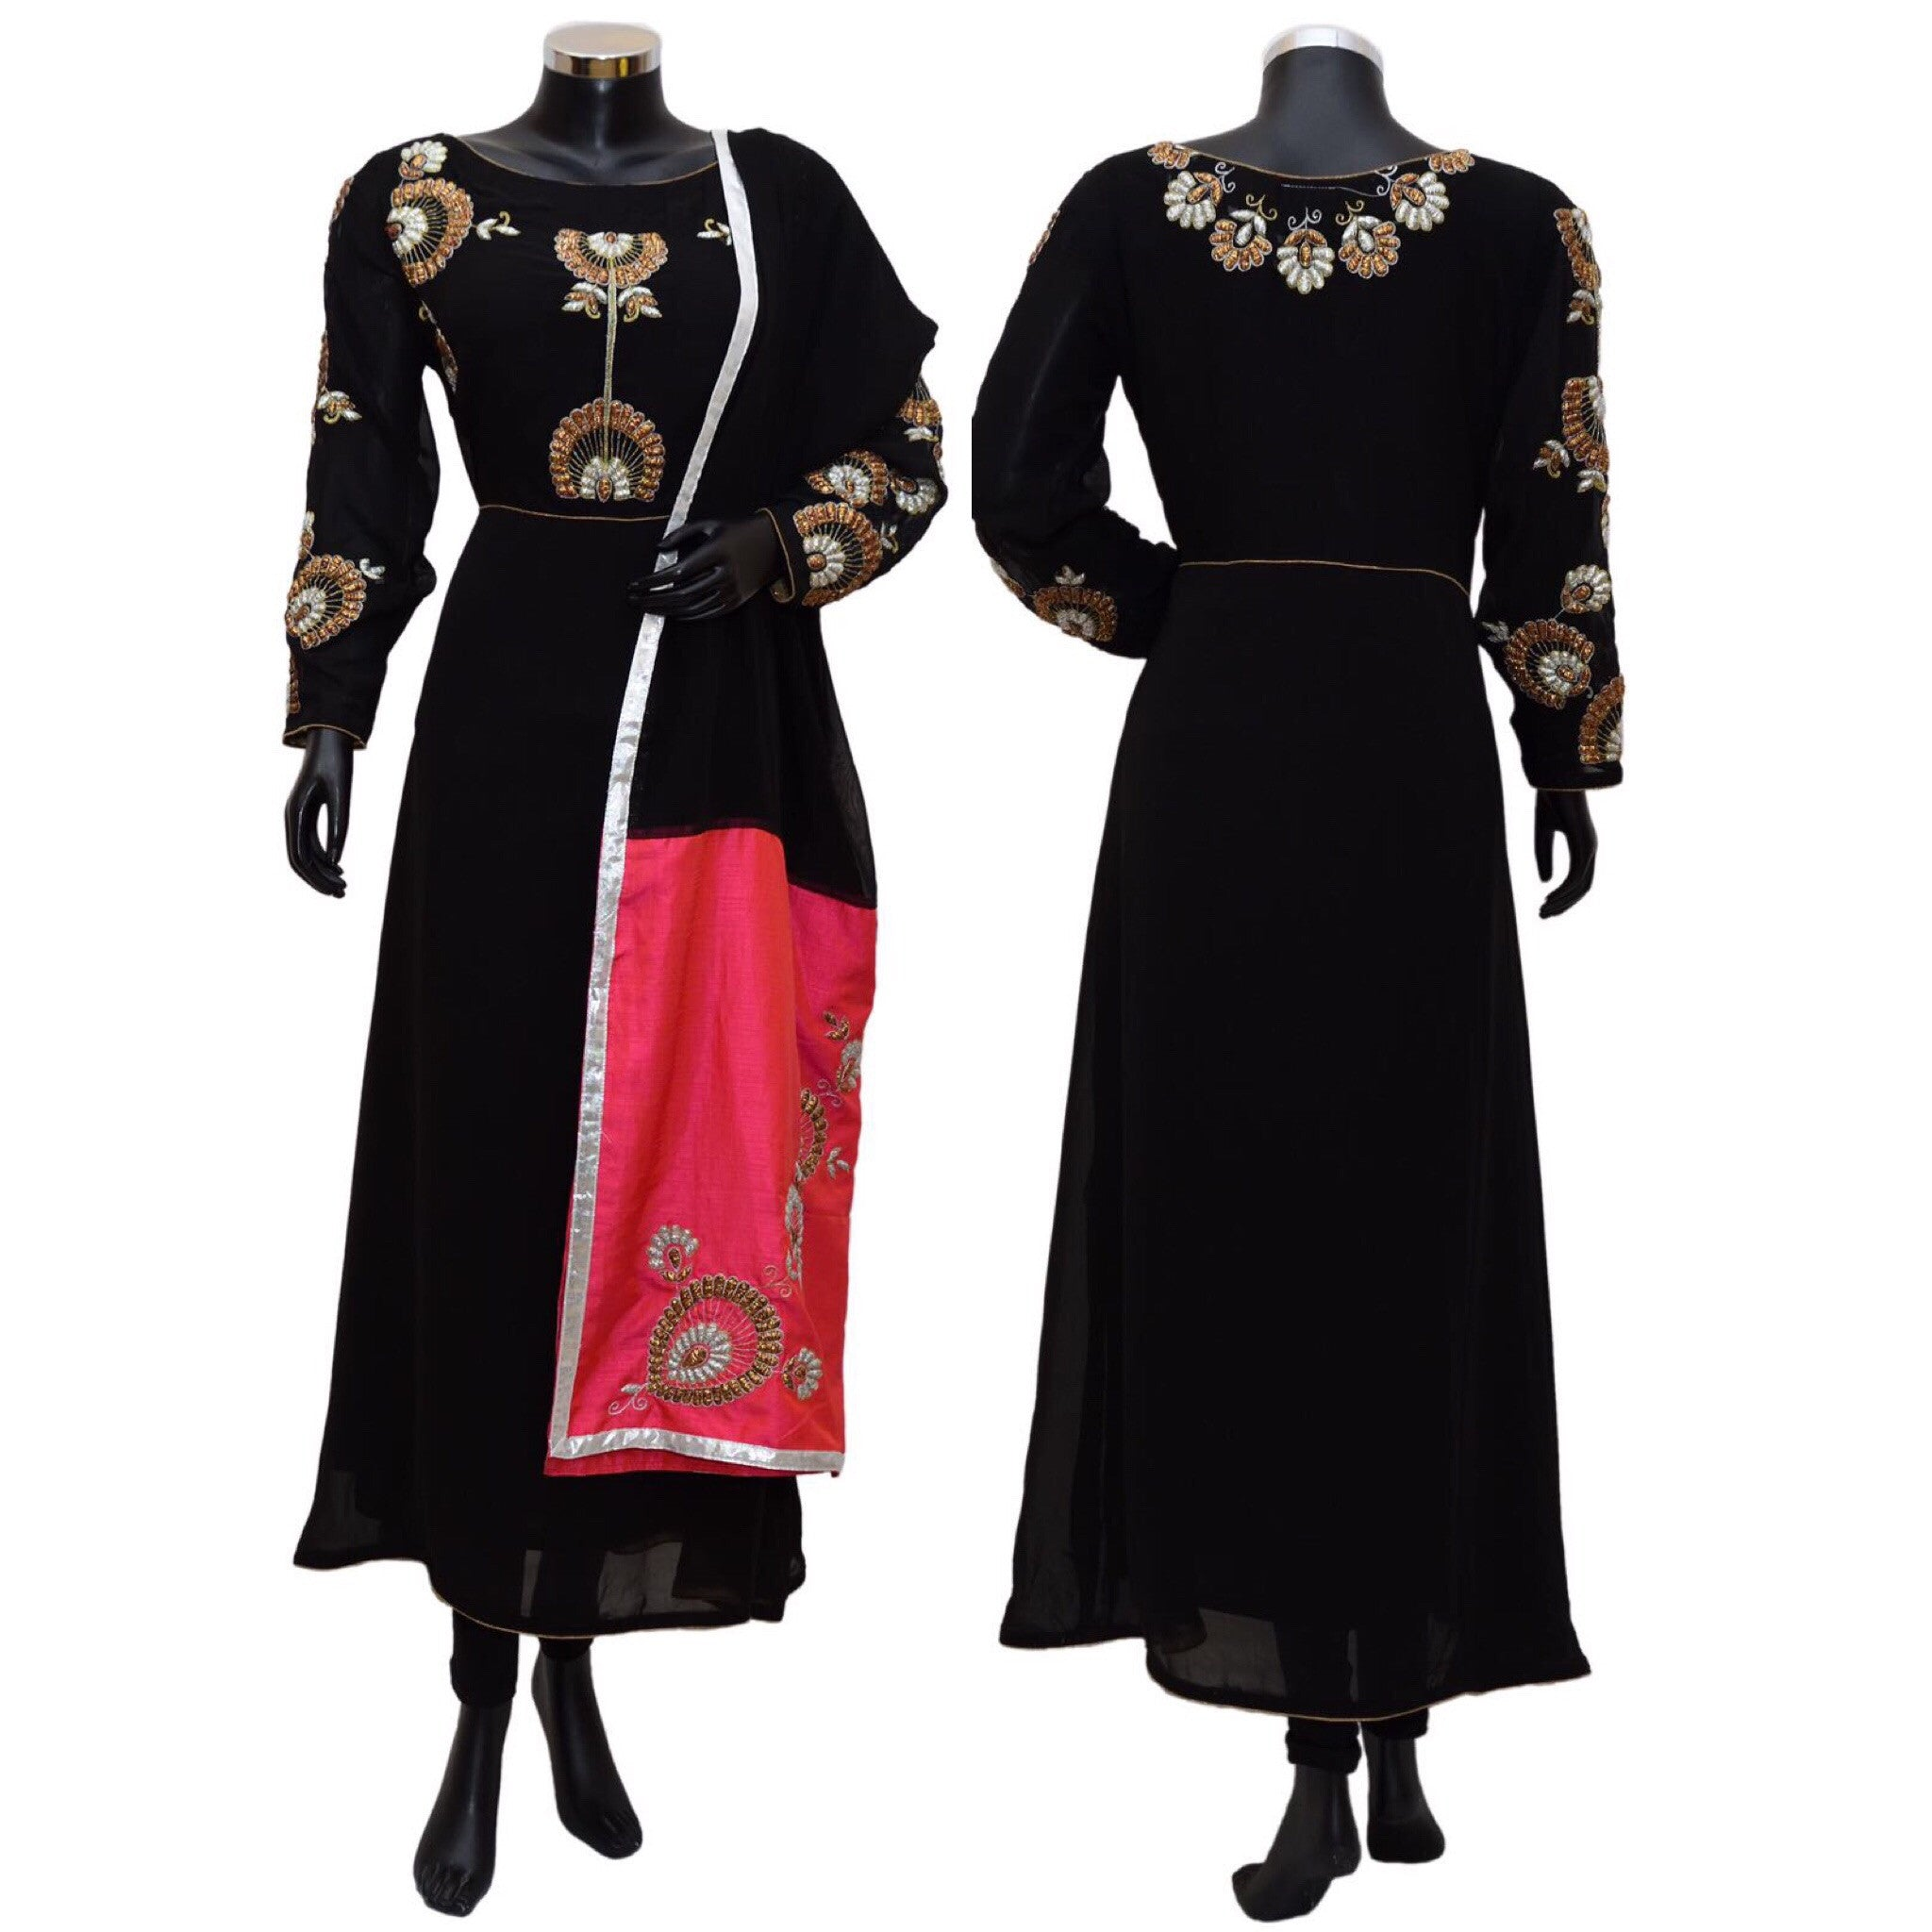 Black embroidered dress #fdn0407